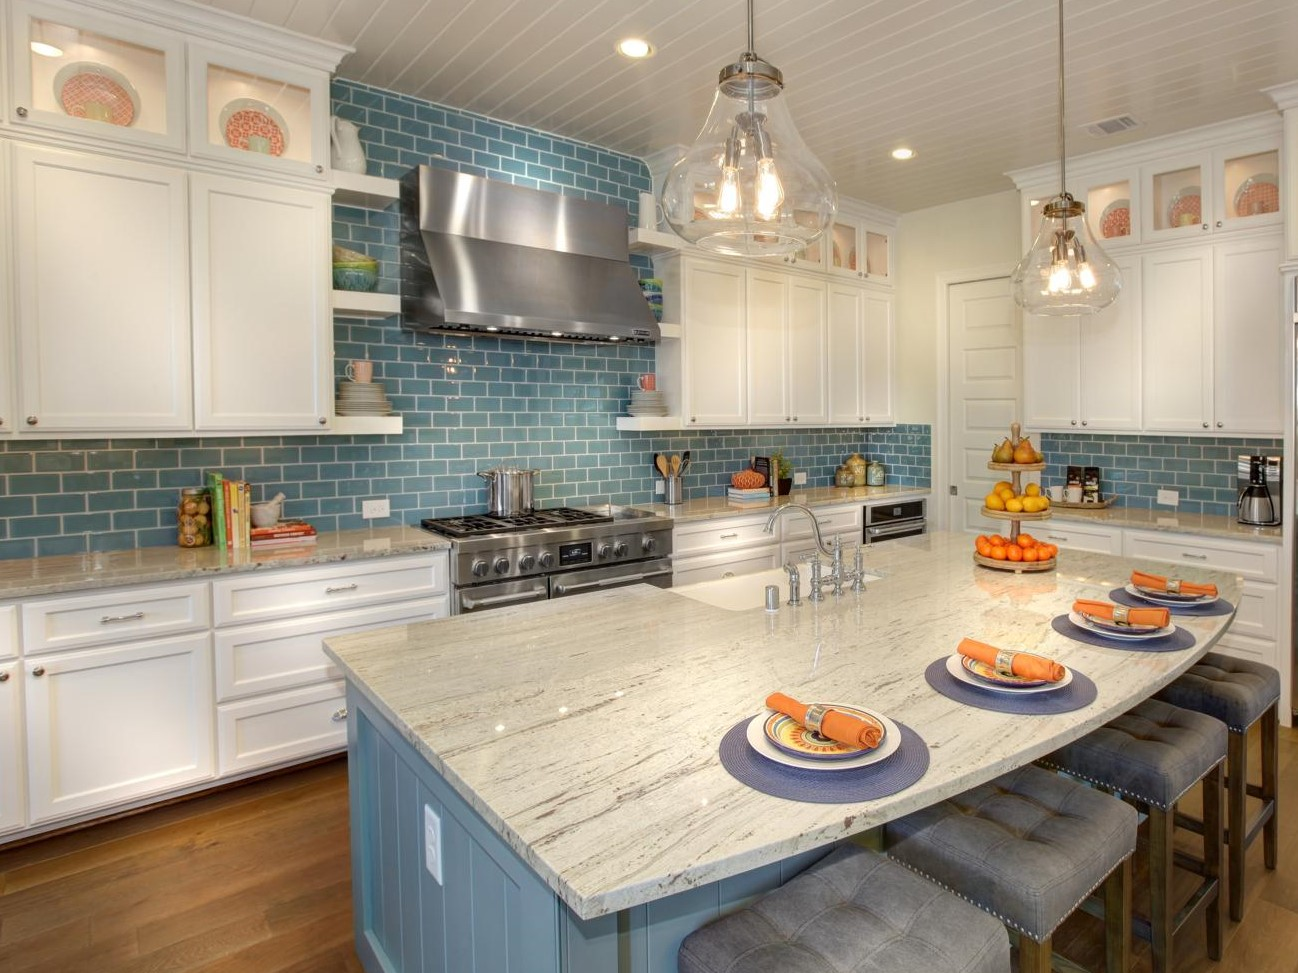 White-kitchen-cabinets-with-blue-subway-tile-backsplash